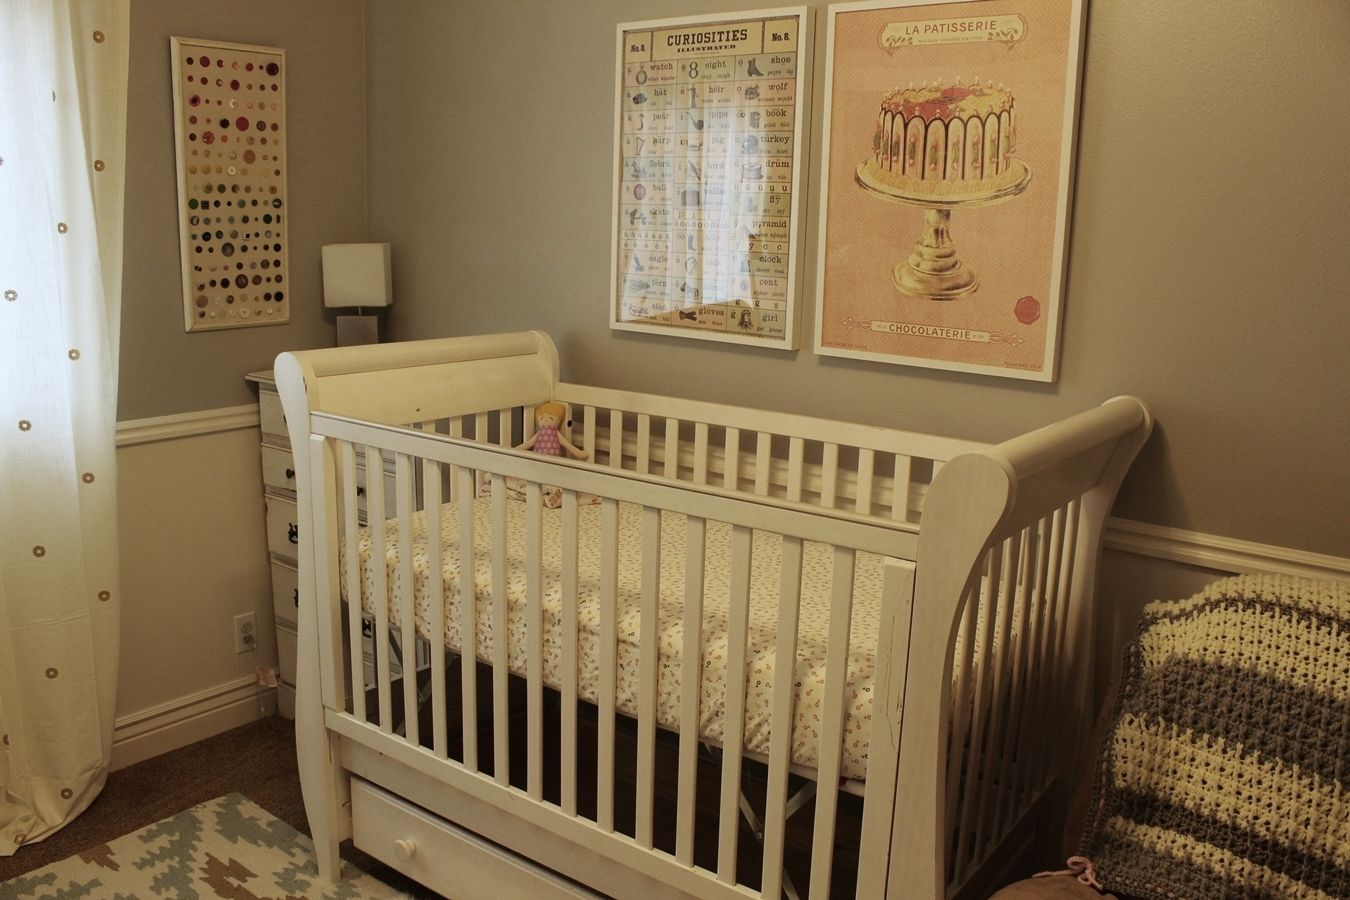 Baby Cradle Sheets Diy Crib Sheet Step By Step Tutorial For Making Two Types